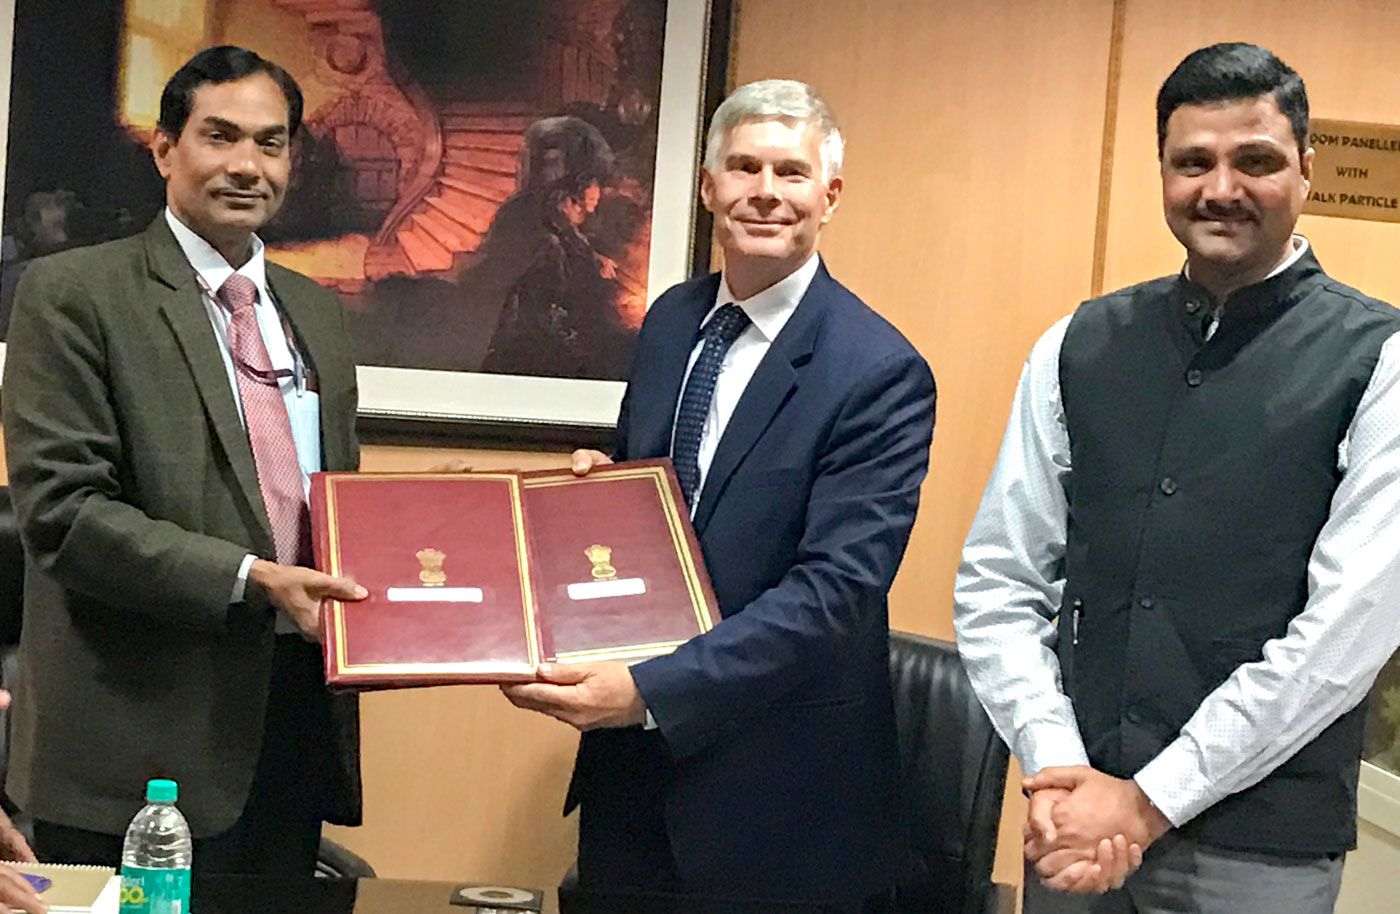 Dr Mohapatra, Director General, ICAR, Dr Bergvinson, Director General, ICRISAT and Dr Padhee, Director, Country Relations, ICRISAT at the signing. Photo: ICRISAT